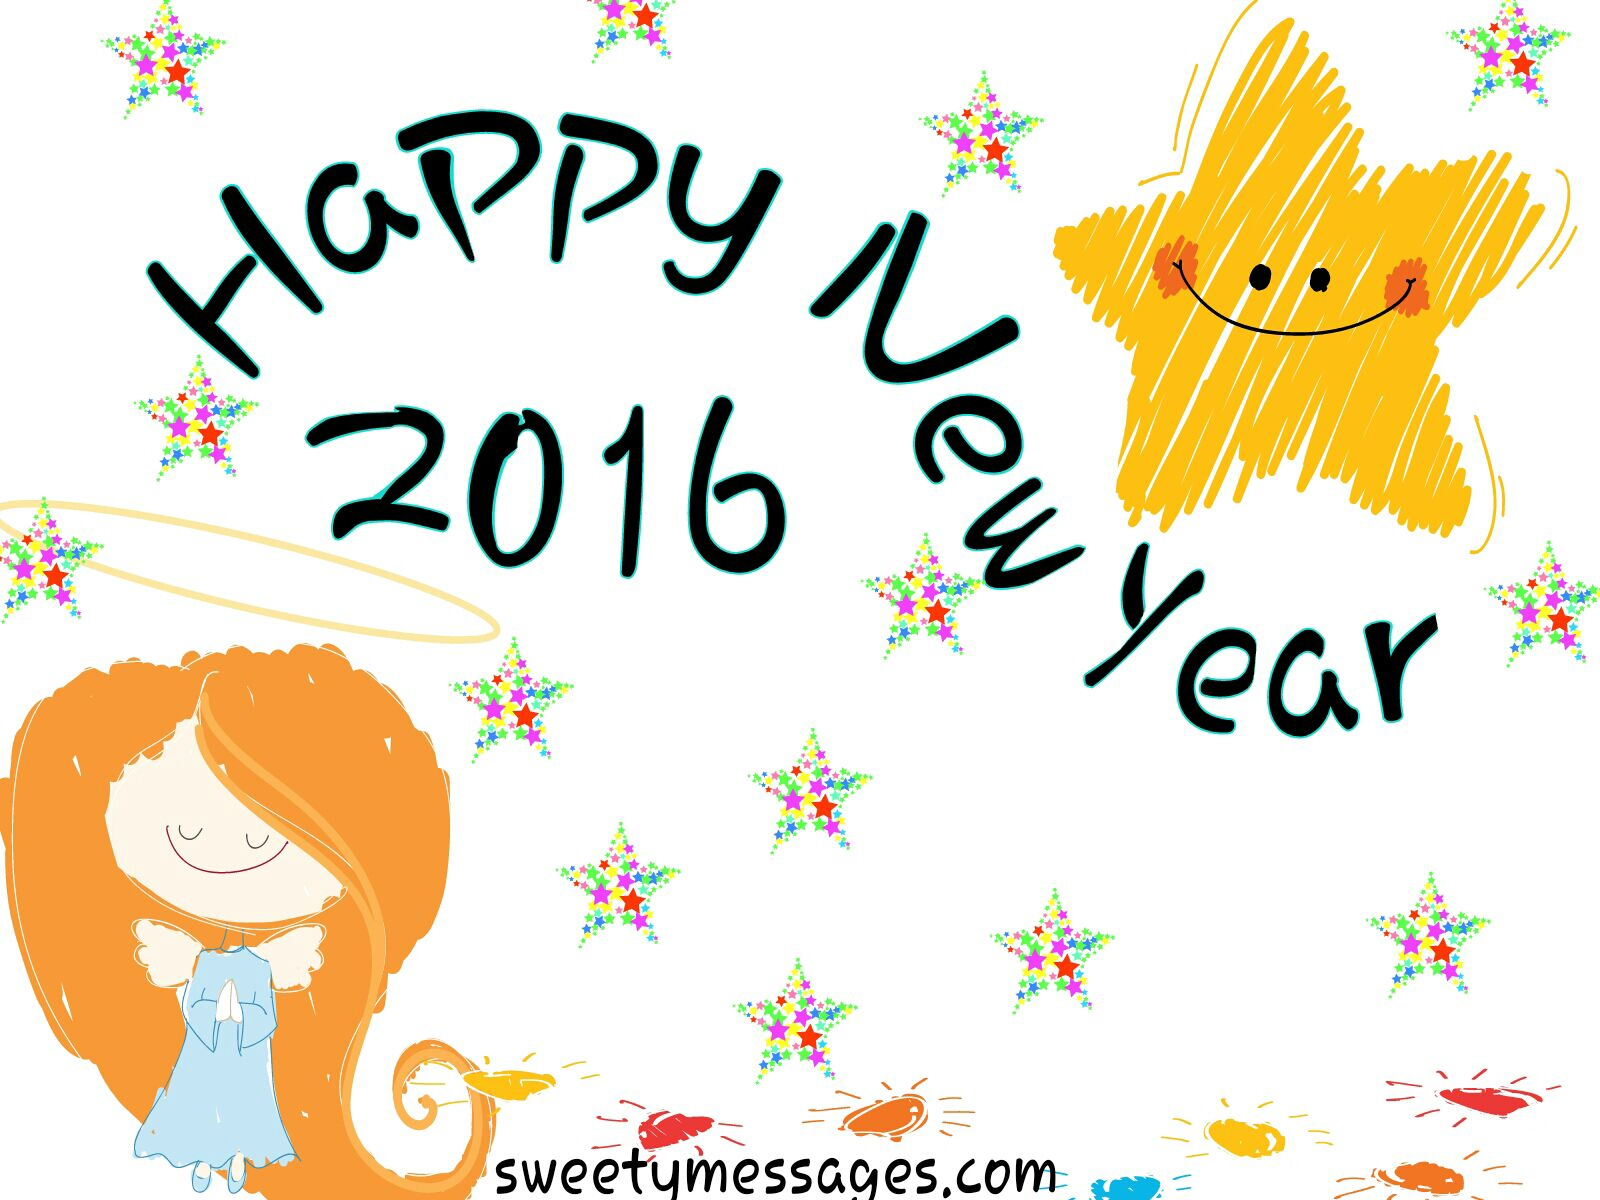 1600x1200 Cute New Year Messages